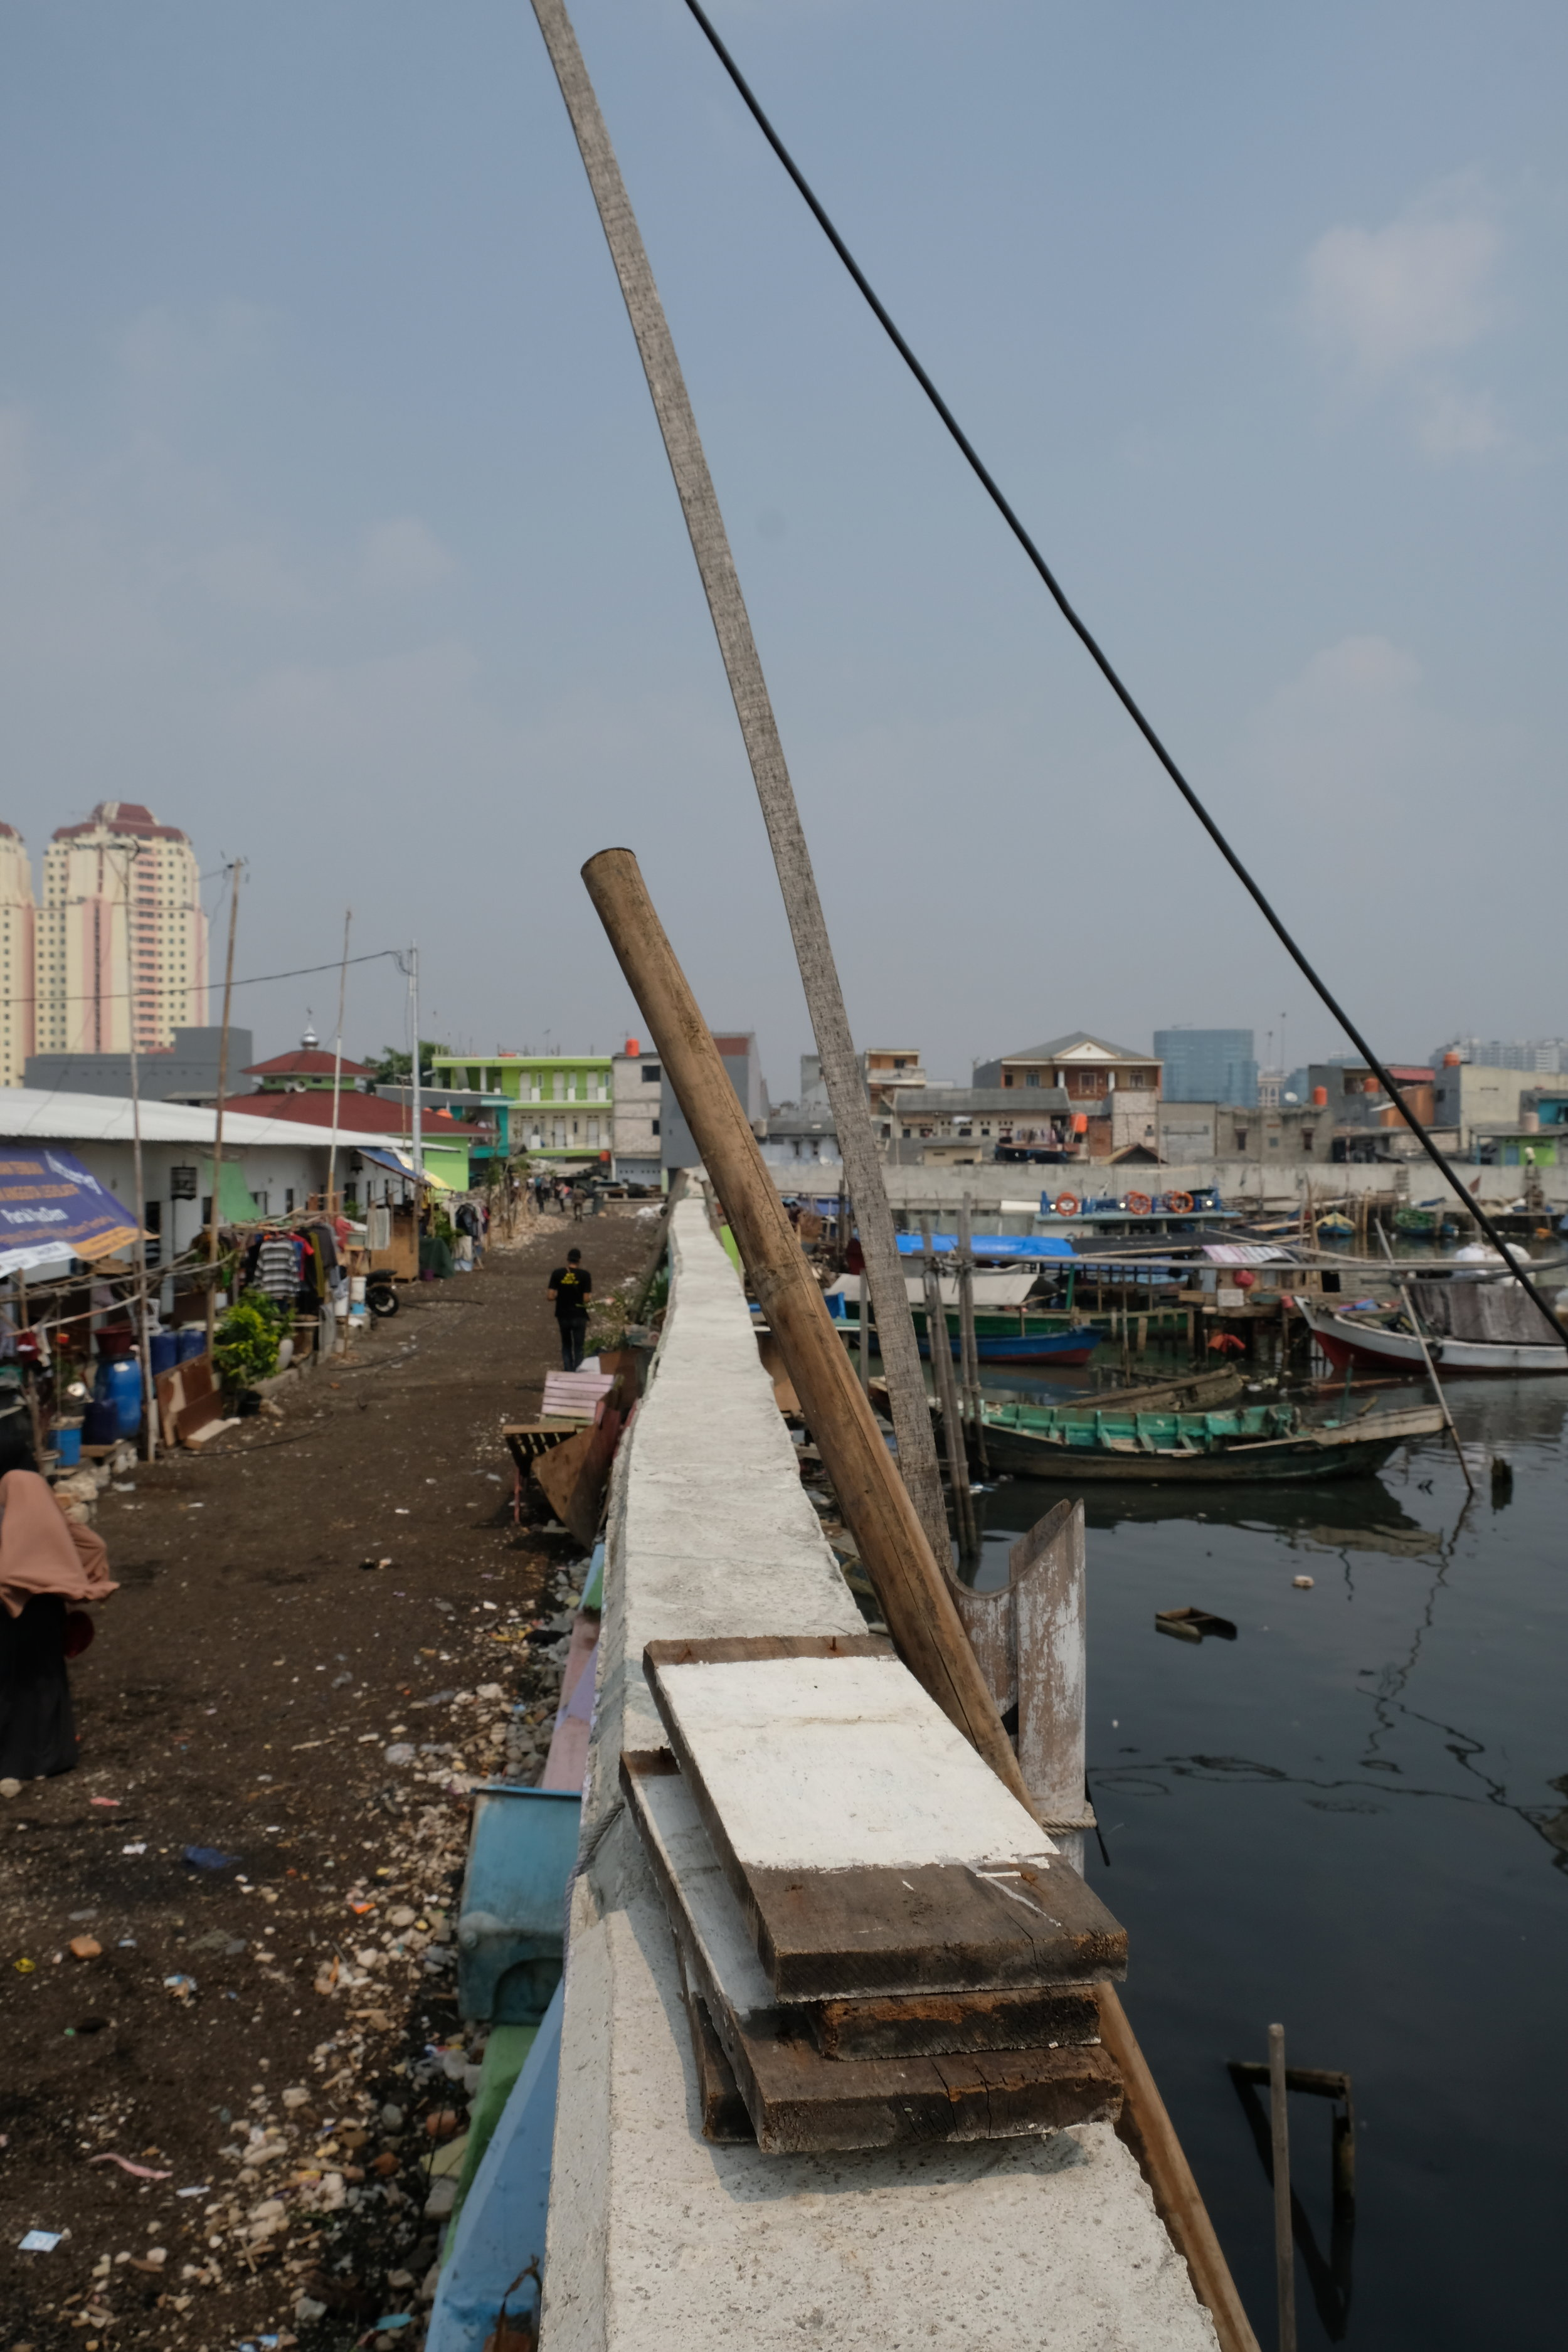 We visited Kampung Aquariam in Jakarta, a fishing village on the edge of the harbour that had been demolished by the government. The courts then deemed the governments actions illegal, and demanded they help rehabilitate (some of) the locals back into the the area. The legal system around land ownership in Indonesia complicates the story of informal communities and government action more so than in other parts of the world, and is partially the reason for these tensions. As does certain environmental logic(s), which present these communities as environmental problems, blocking flood zones, or preventing sea wall creation.